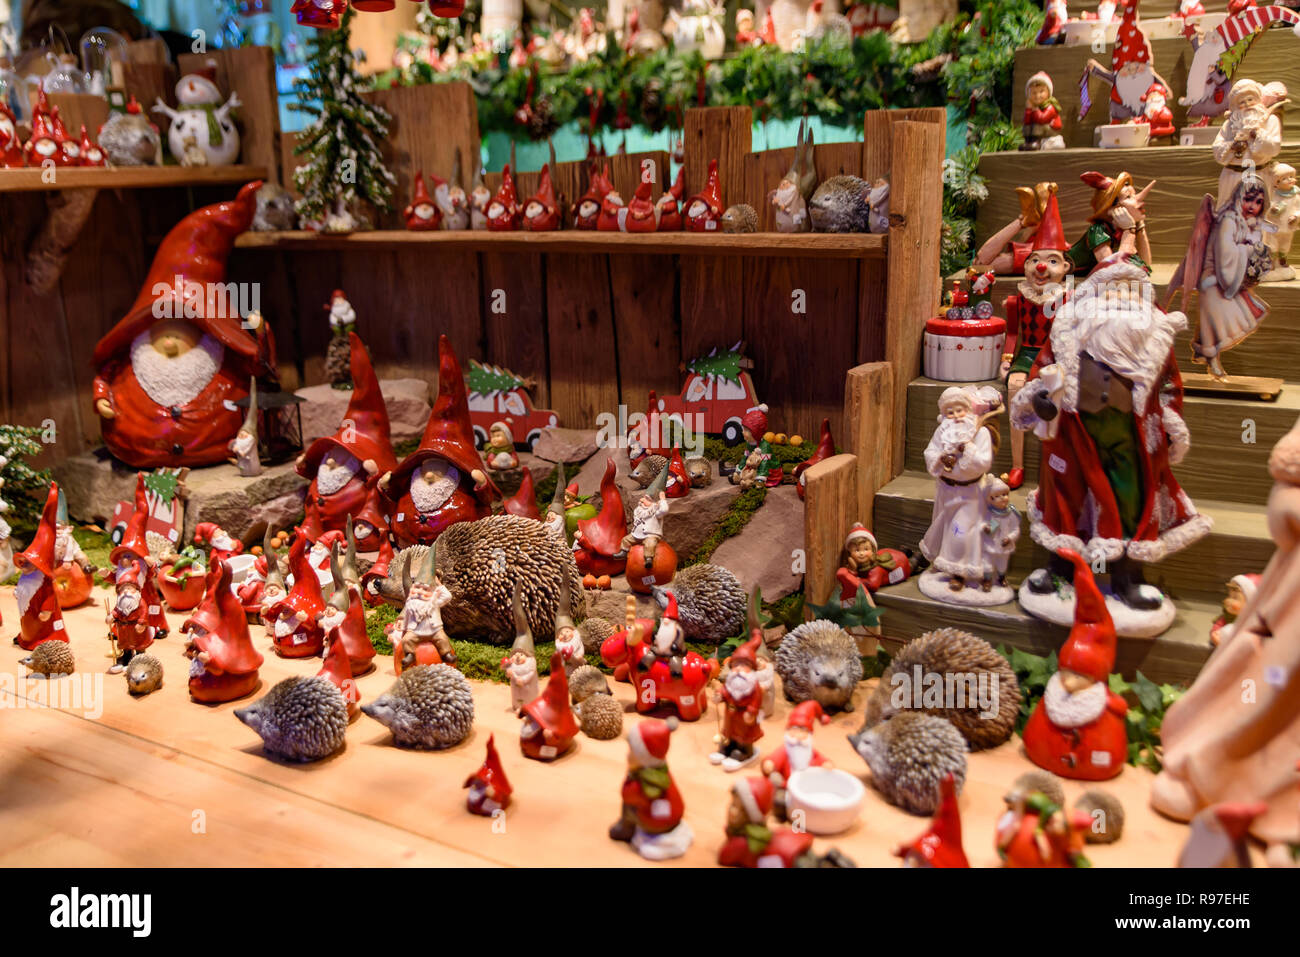 Art Craft Gifts And Decoration Items For Christmas In Christmas